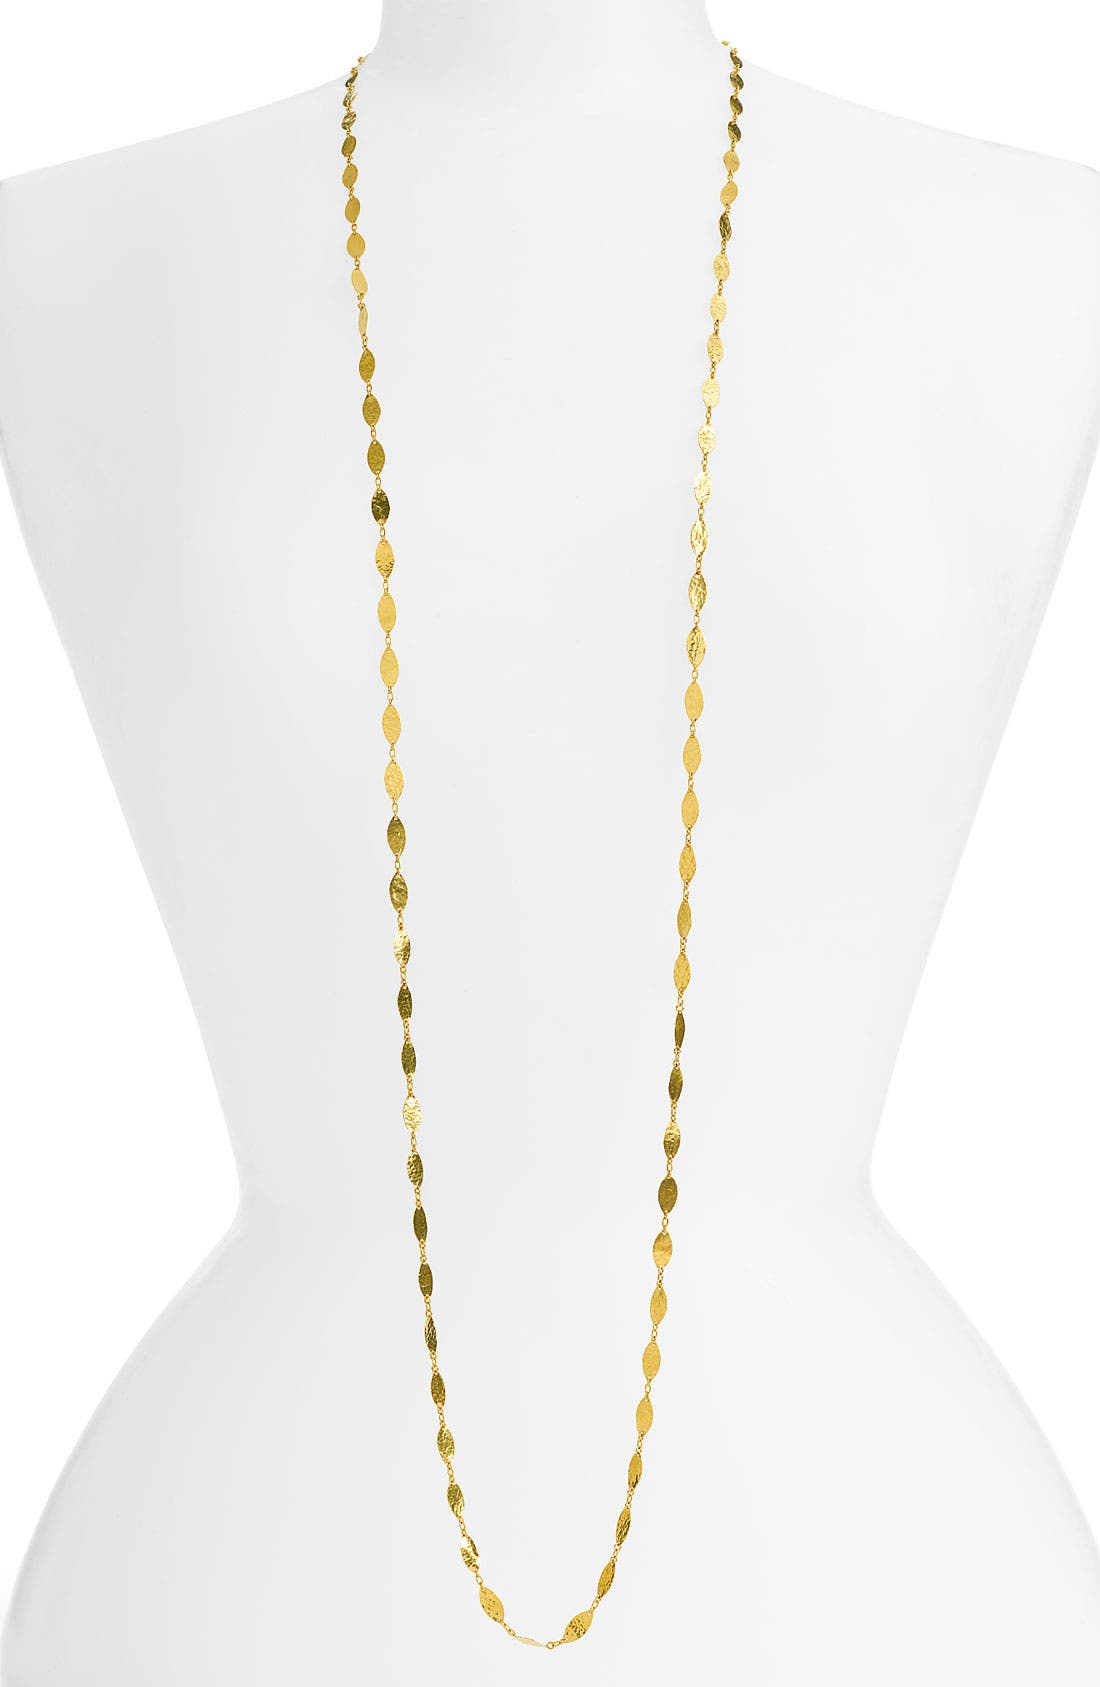 Main Image - Gurhan 'Willow' Extra Long Leaf Necklace